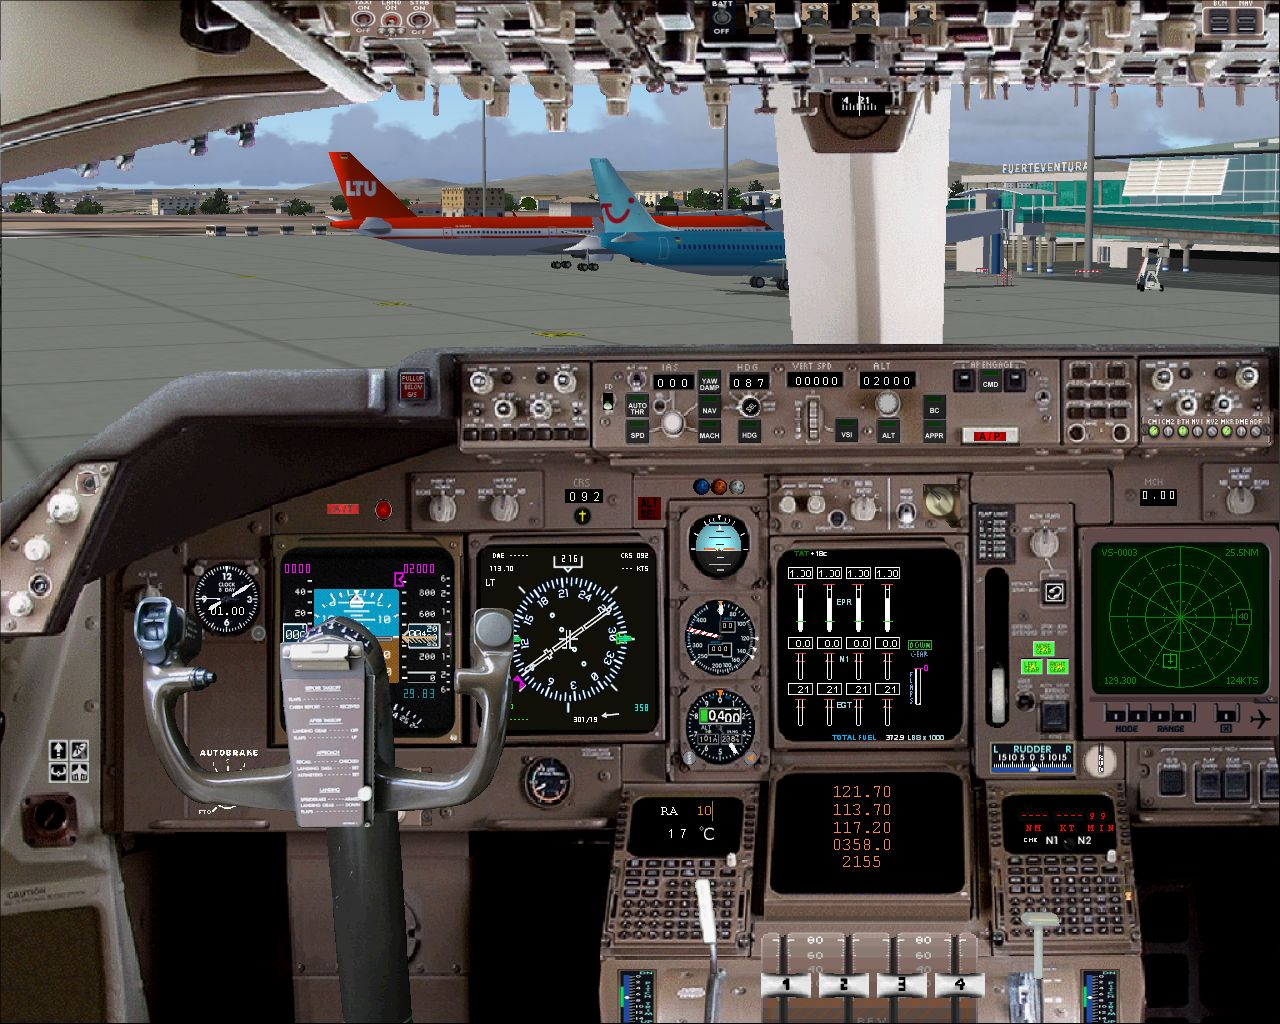 2002 Flight Simulator Free Download 2004 Concorde